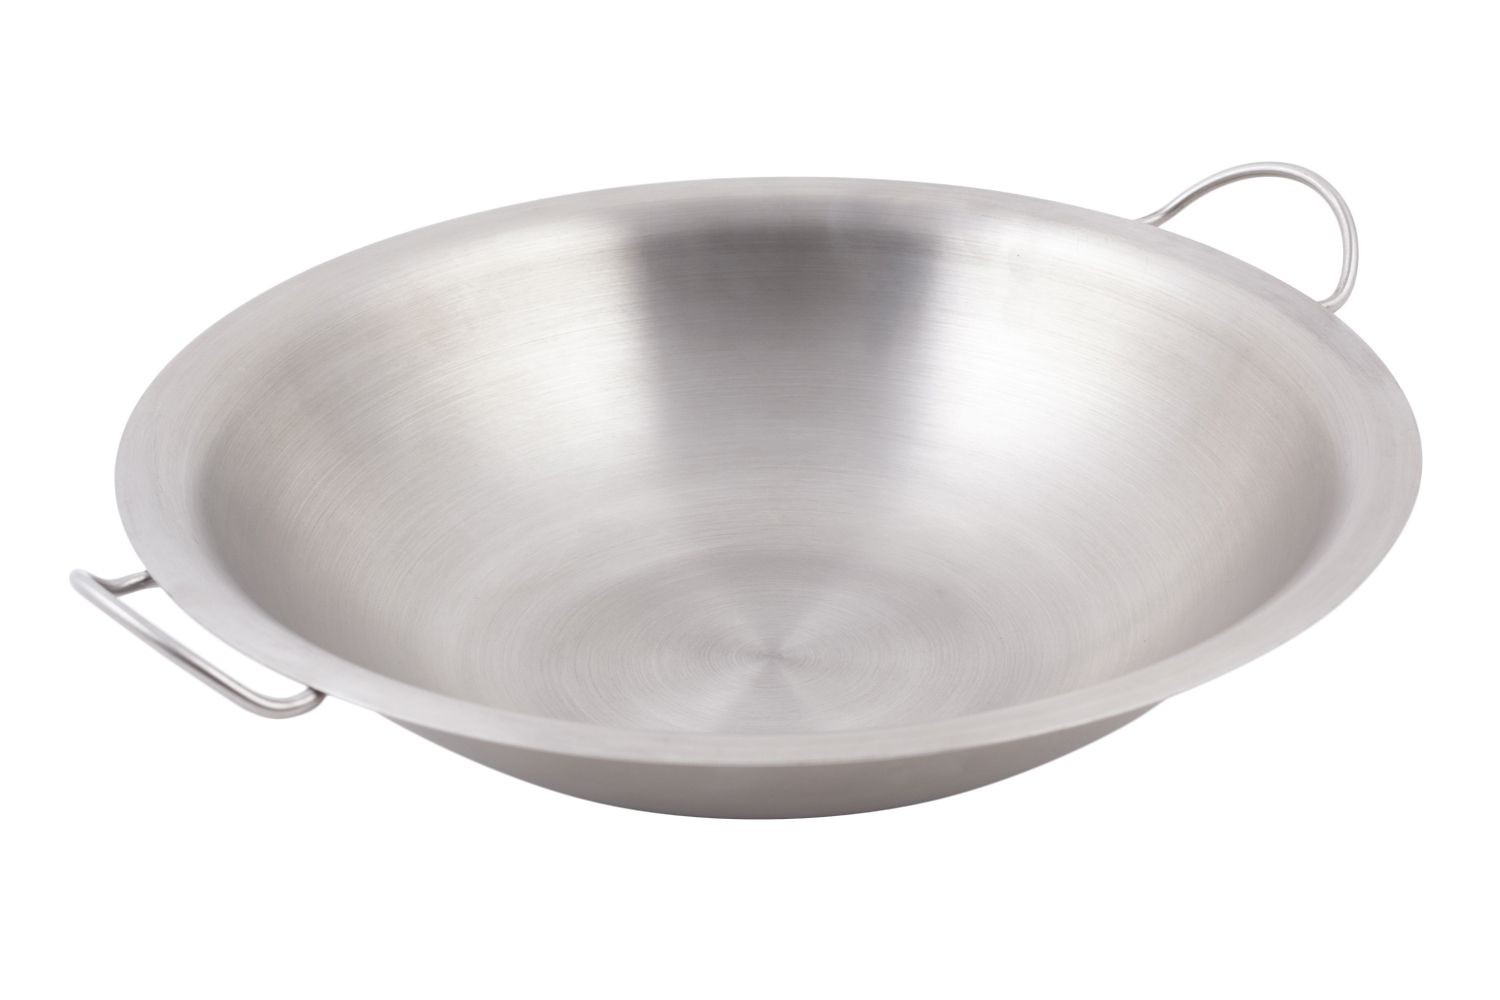 Bon Chef 21003 Chafing Dish Food Pan with Induction Bottom